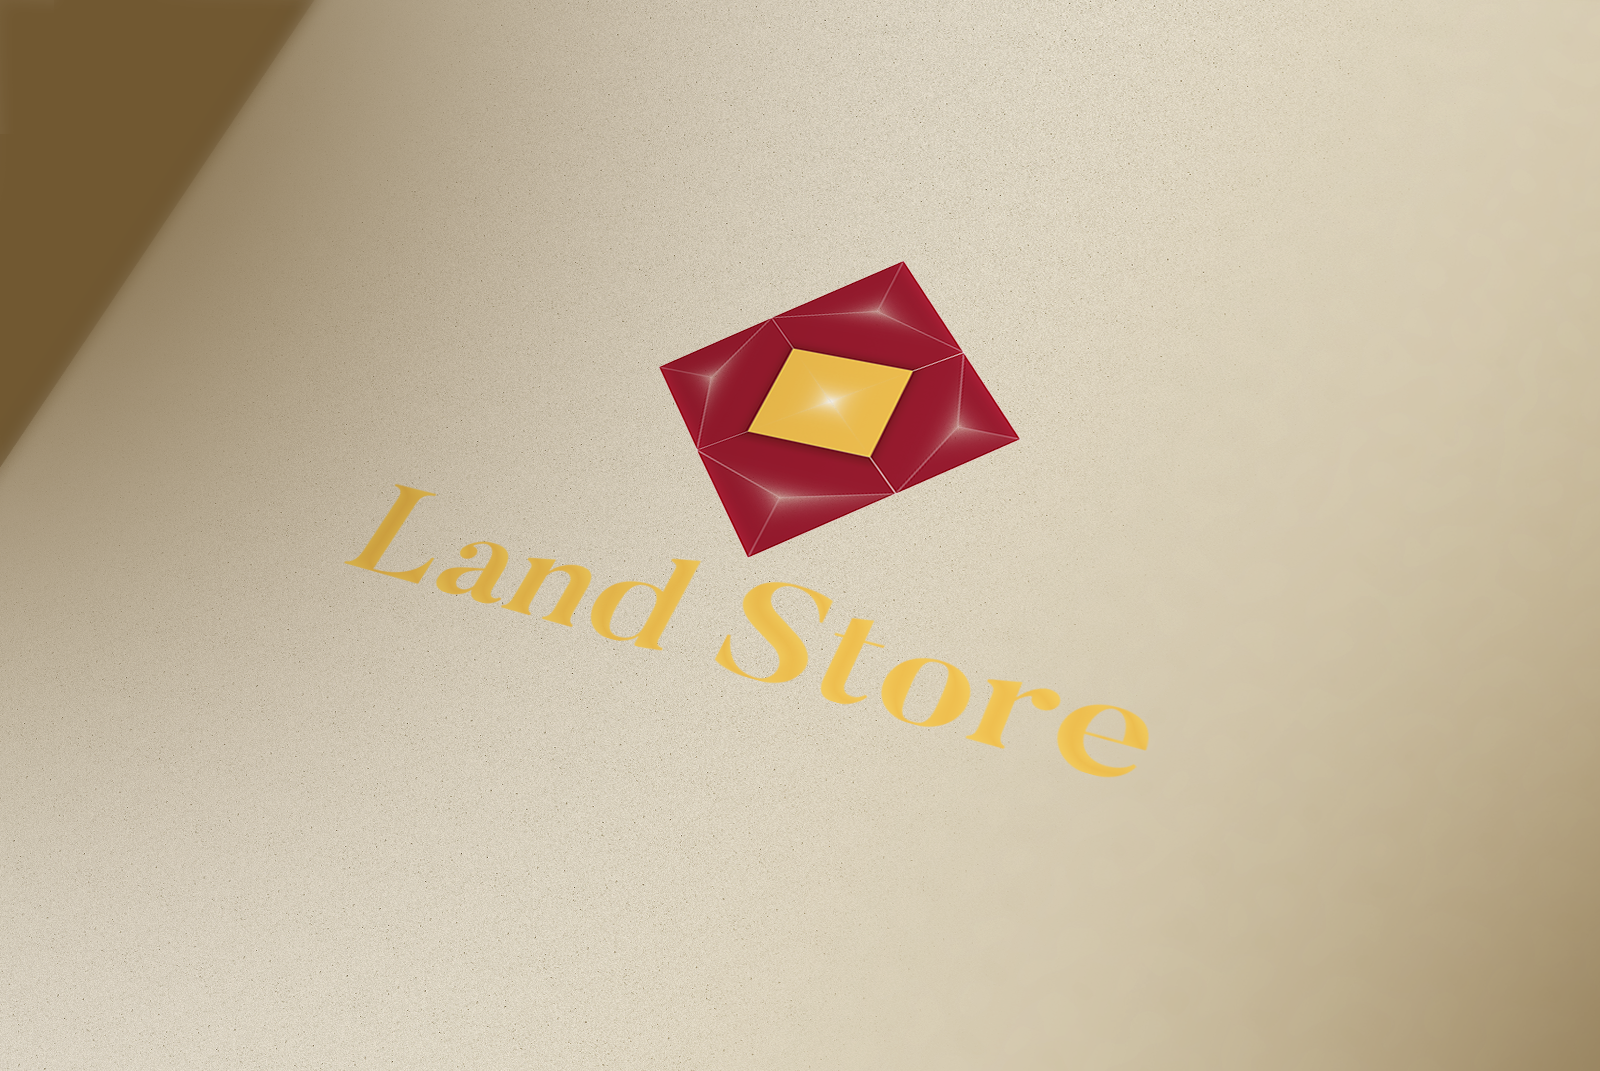 Land Store